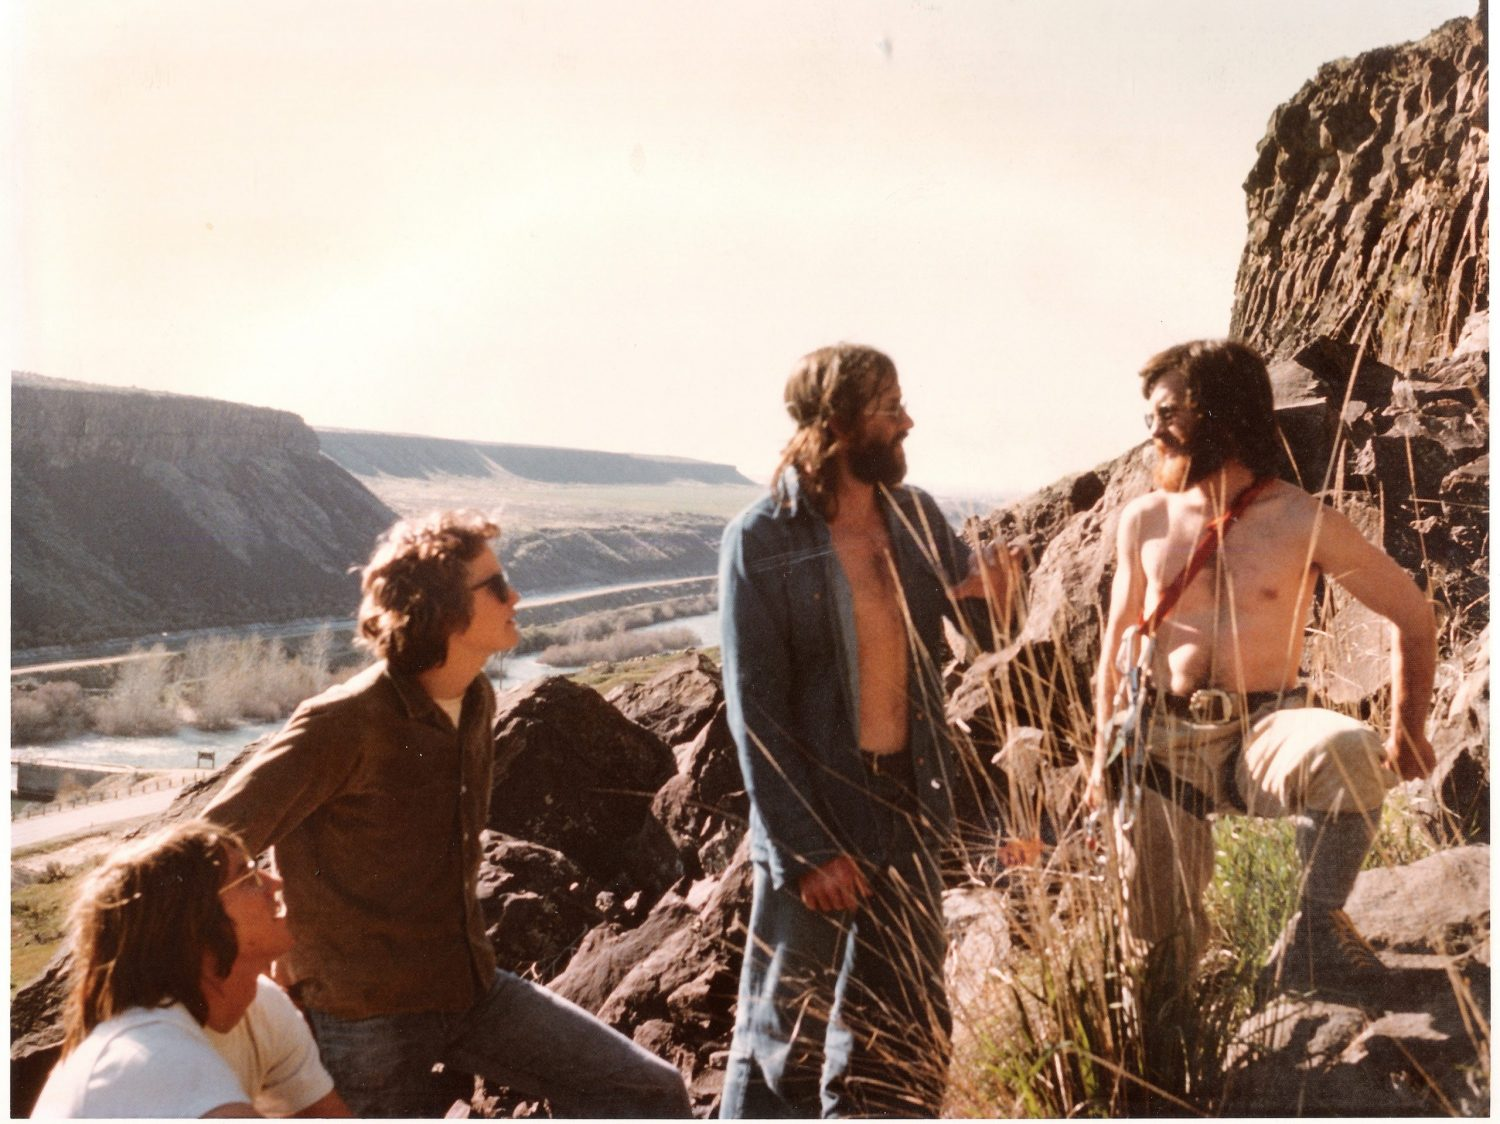 1975 Doug Scott at the Black Cliffs. Left to right Bob Boyles, Bob Henry, Doug Scott, and myself. Lou Florence photo.